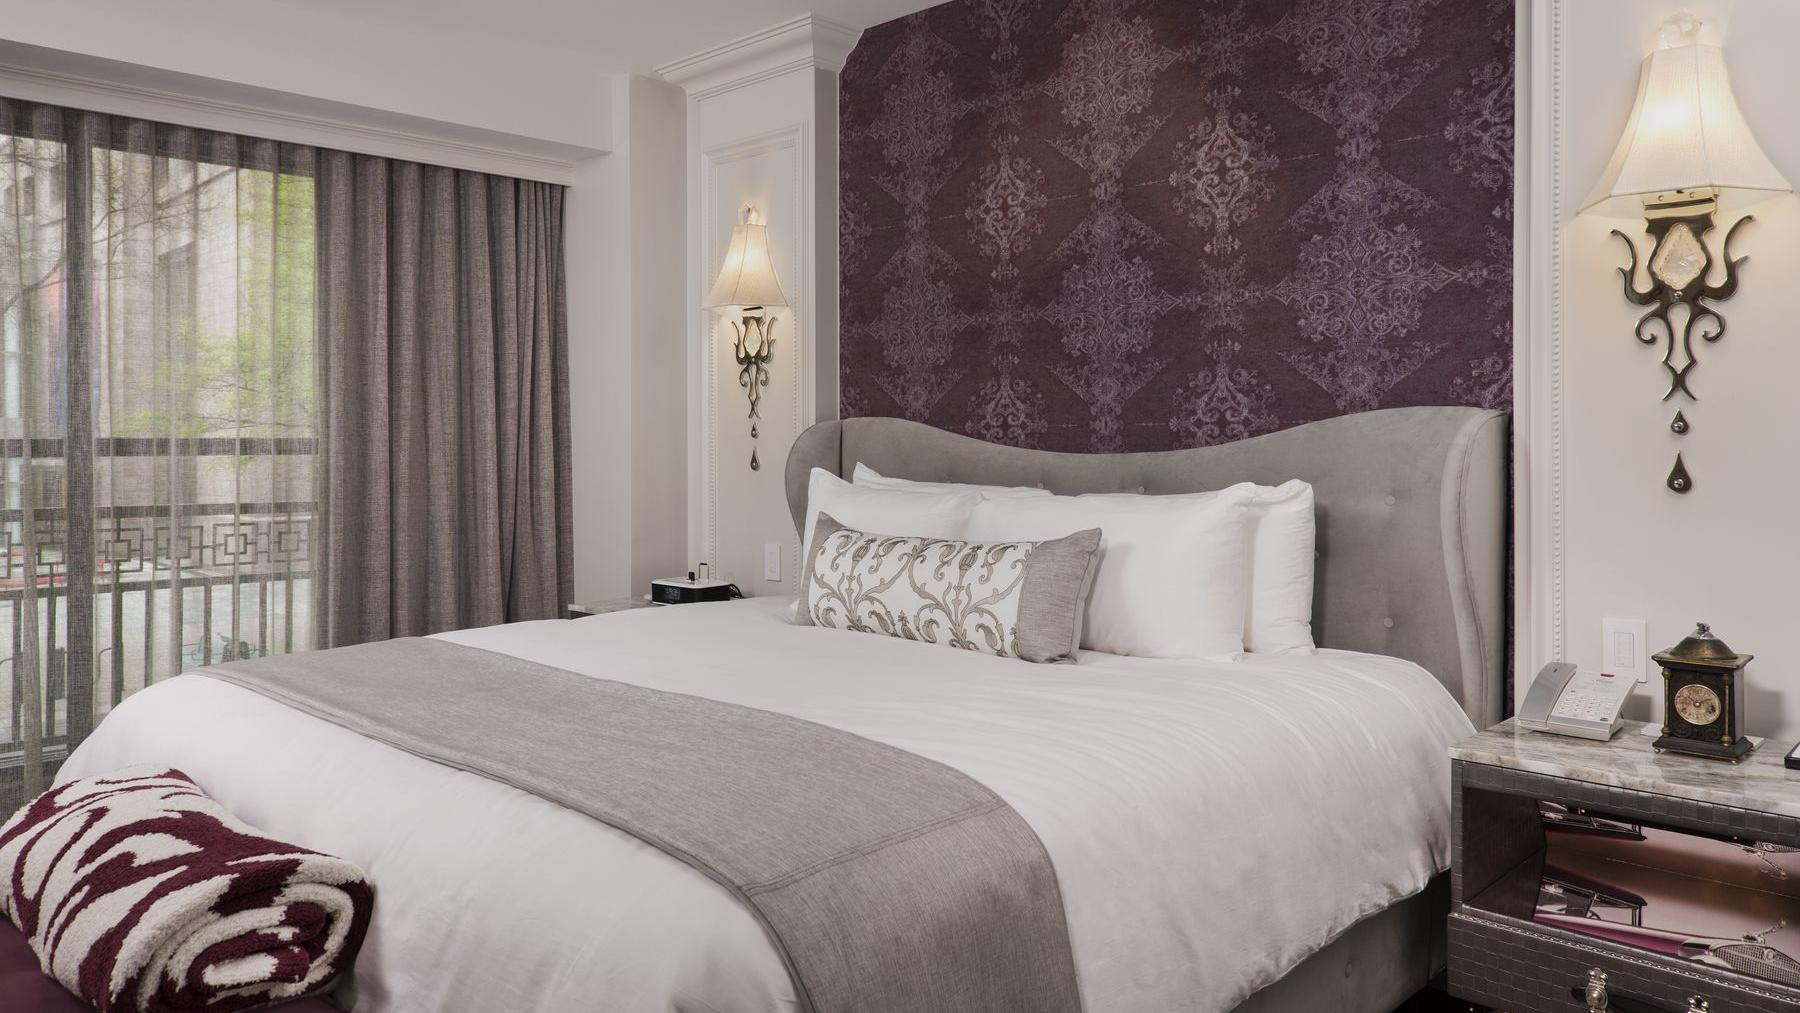 bed in cozy room with floral headboard